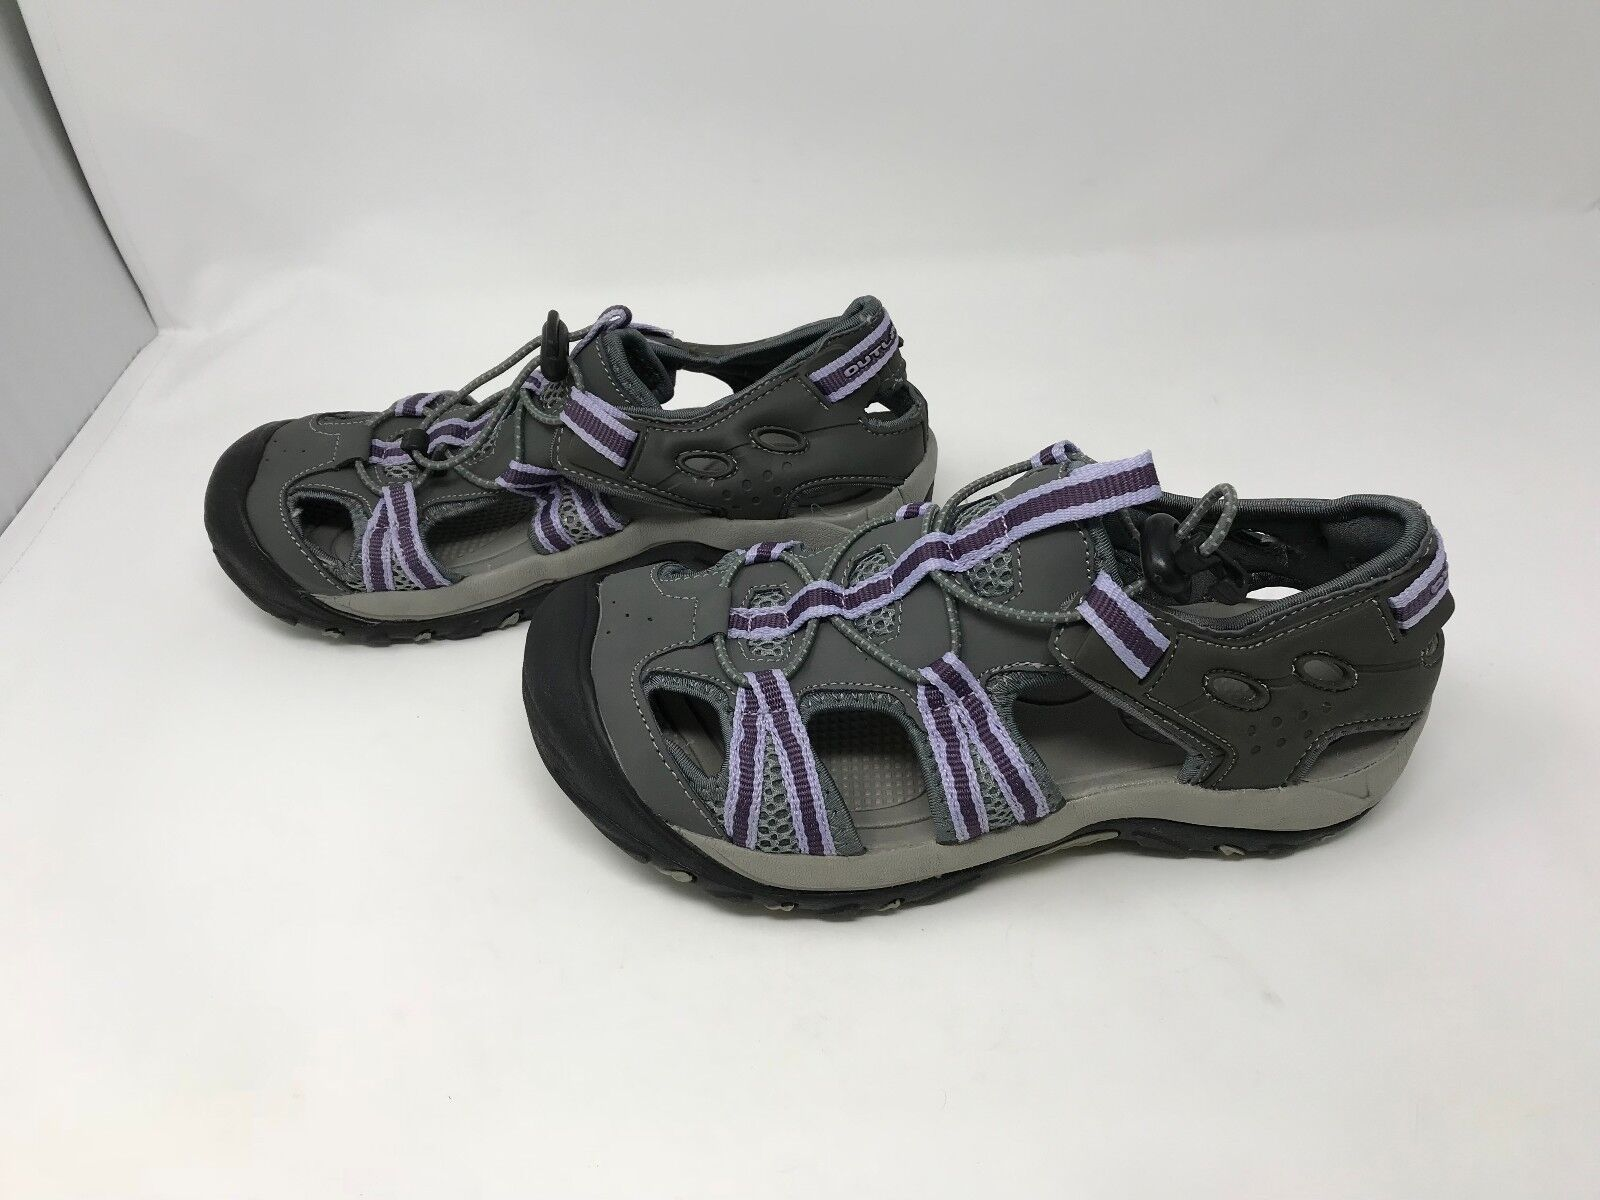 Womens Outland (S6027WSU) Solstice II River Sandals    7G